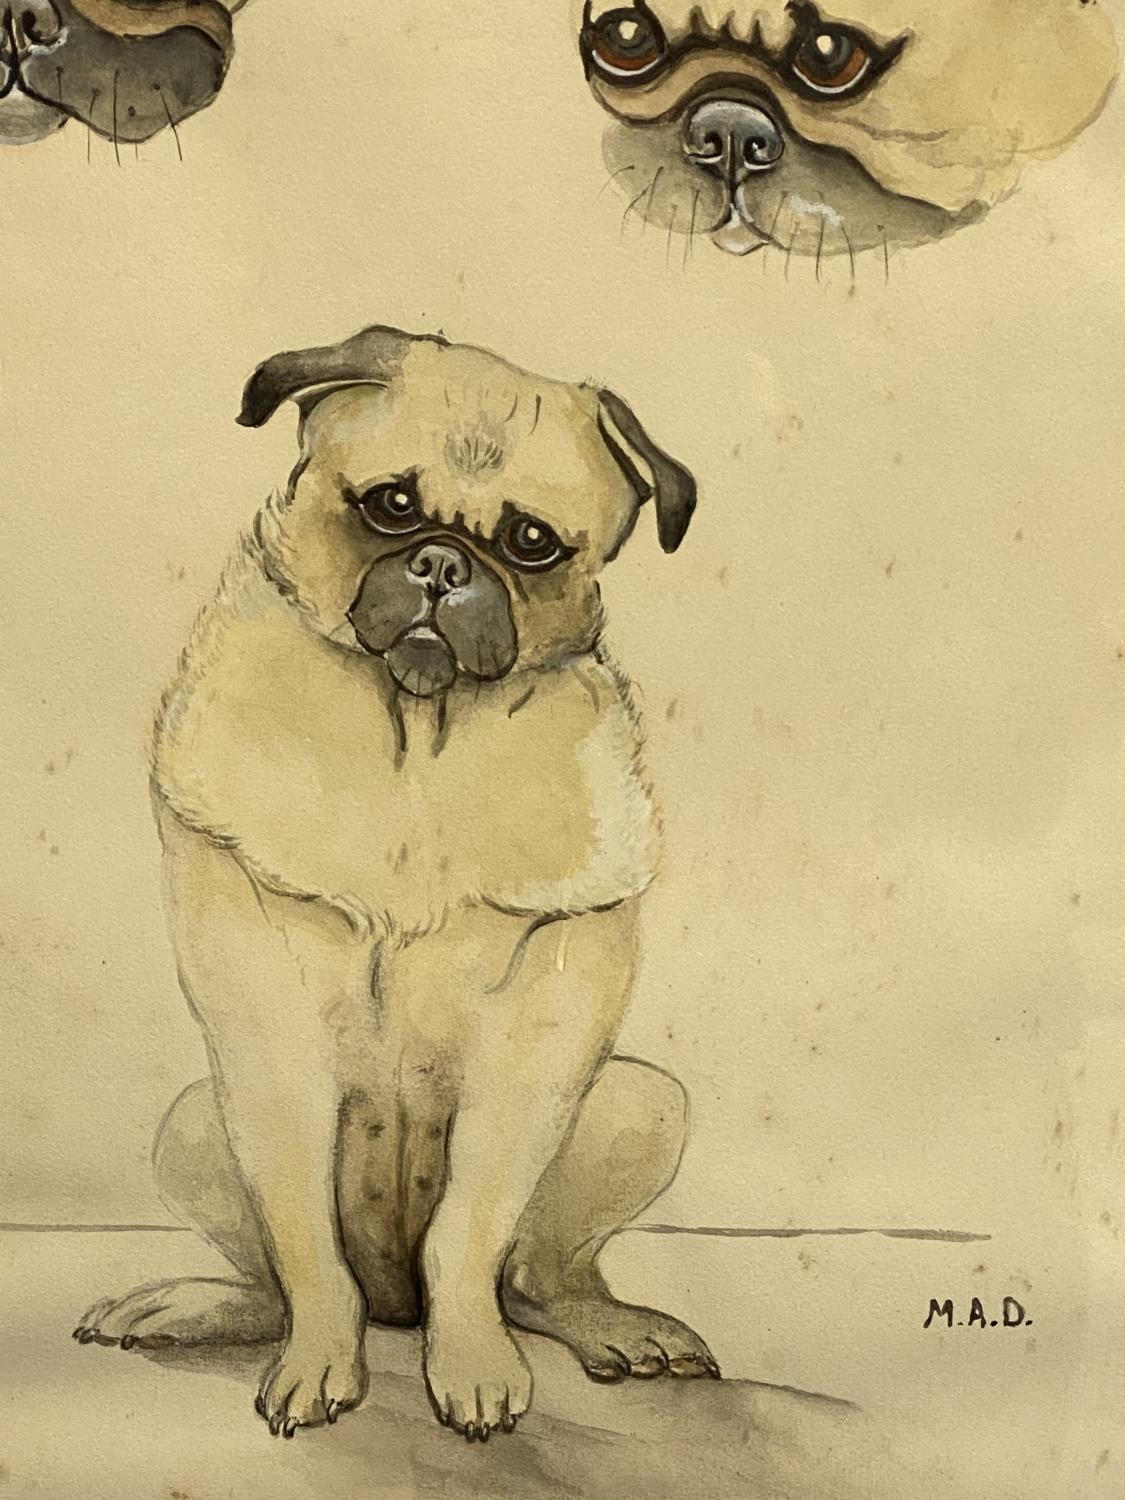 Framed and glazed ink & pencil/mixed media study of Pug dogs, signed lower right MAD, overall size - Image 4 of 4